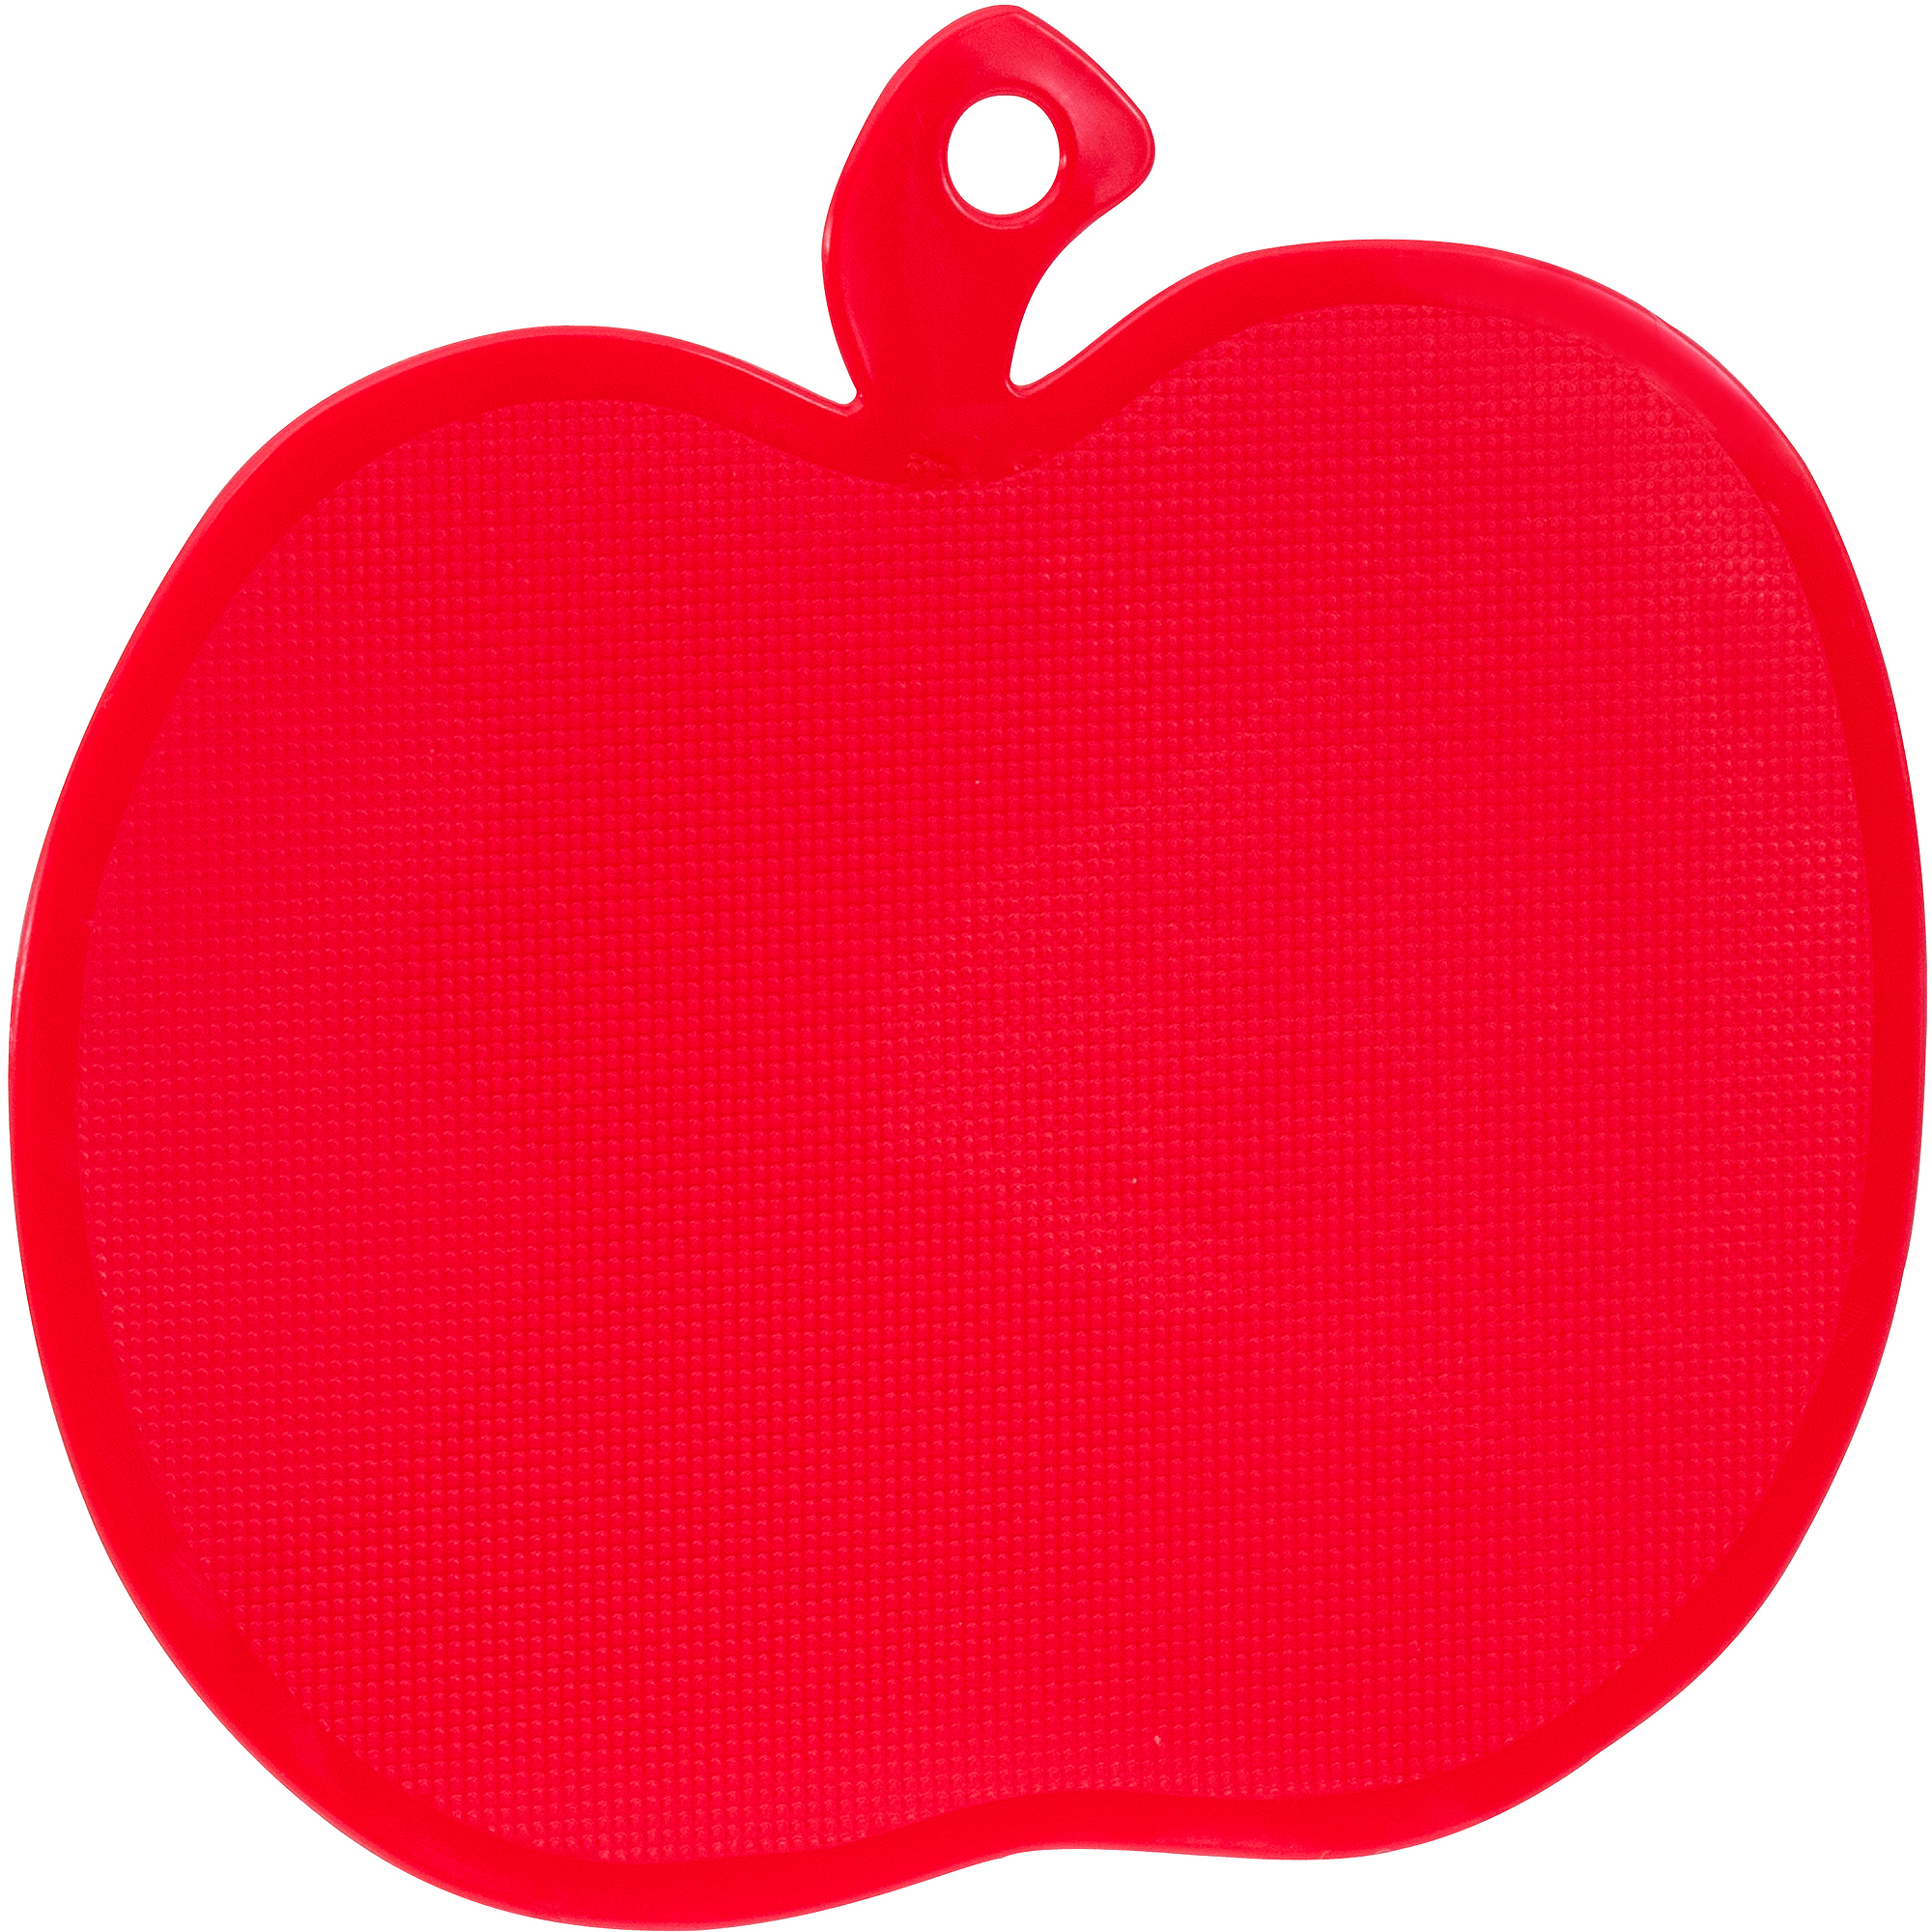 ProFreshionals Cutting Board, Fruit Shape